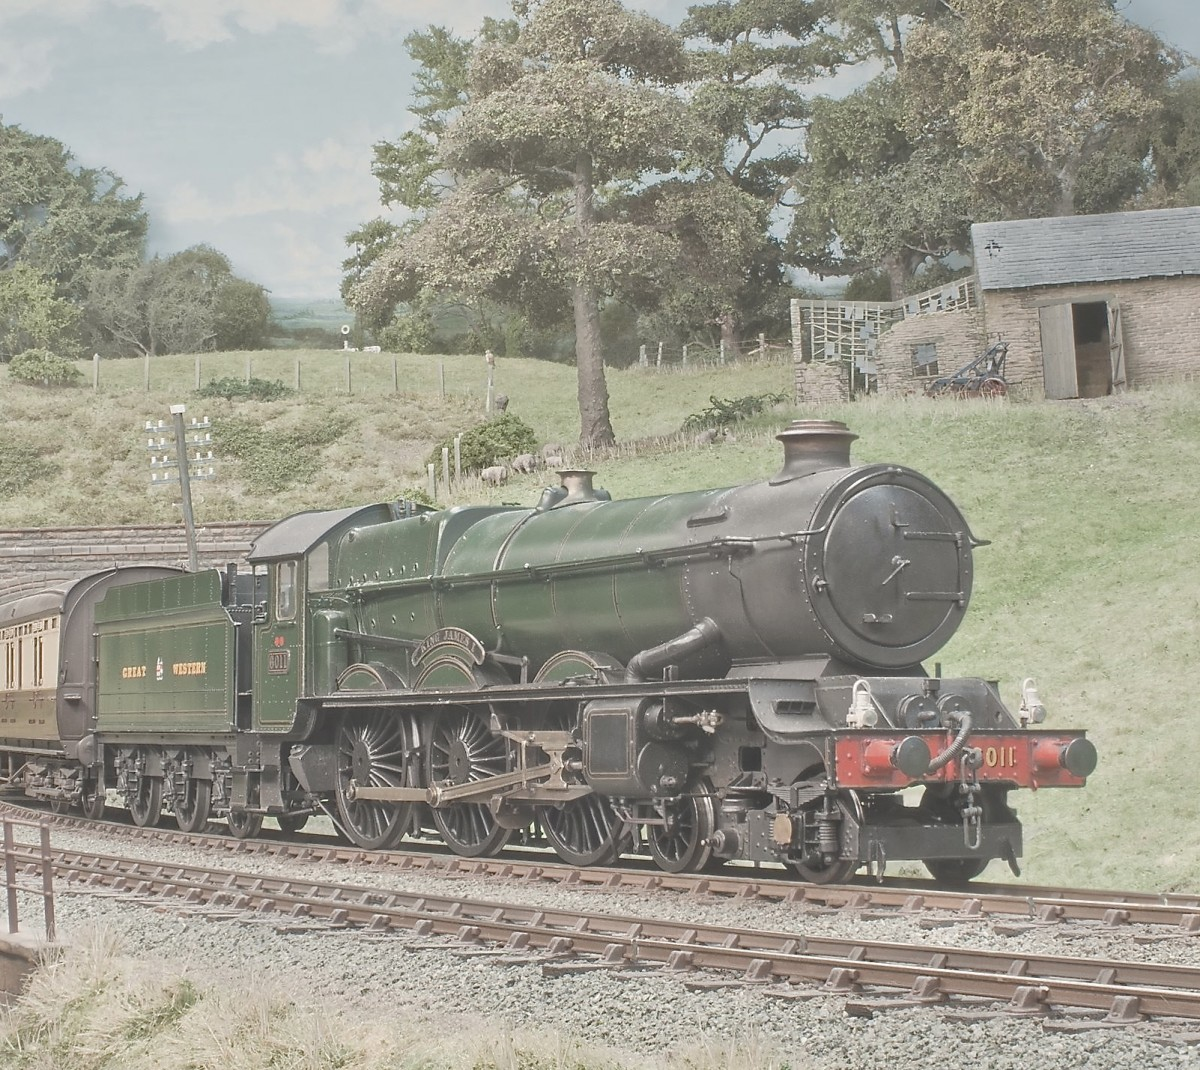 This was the cover photo, but it shows a little more background here. No 6011 King Edward 1 heads east with nine on.